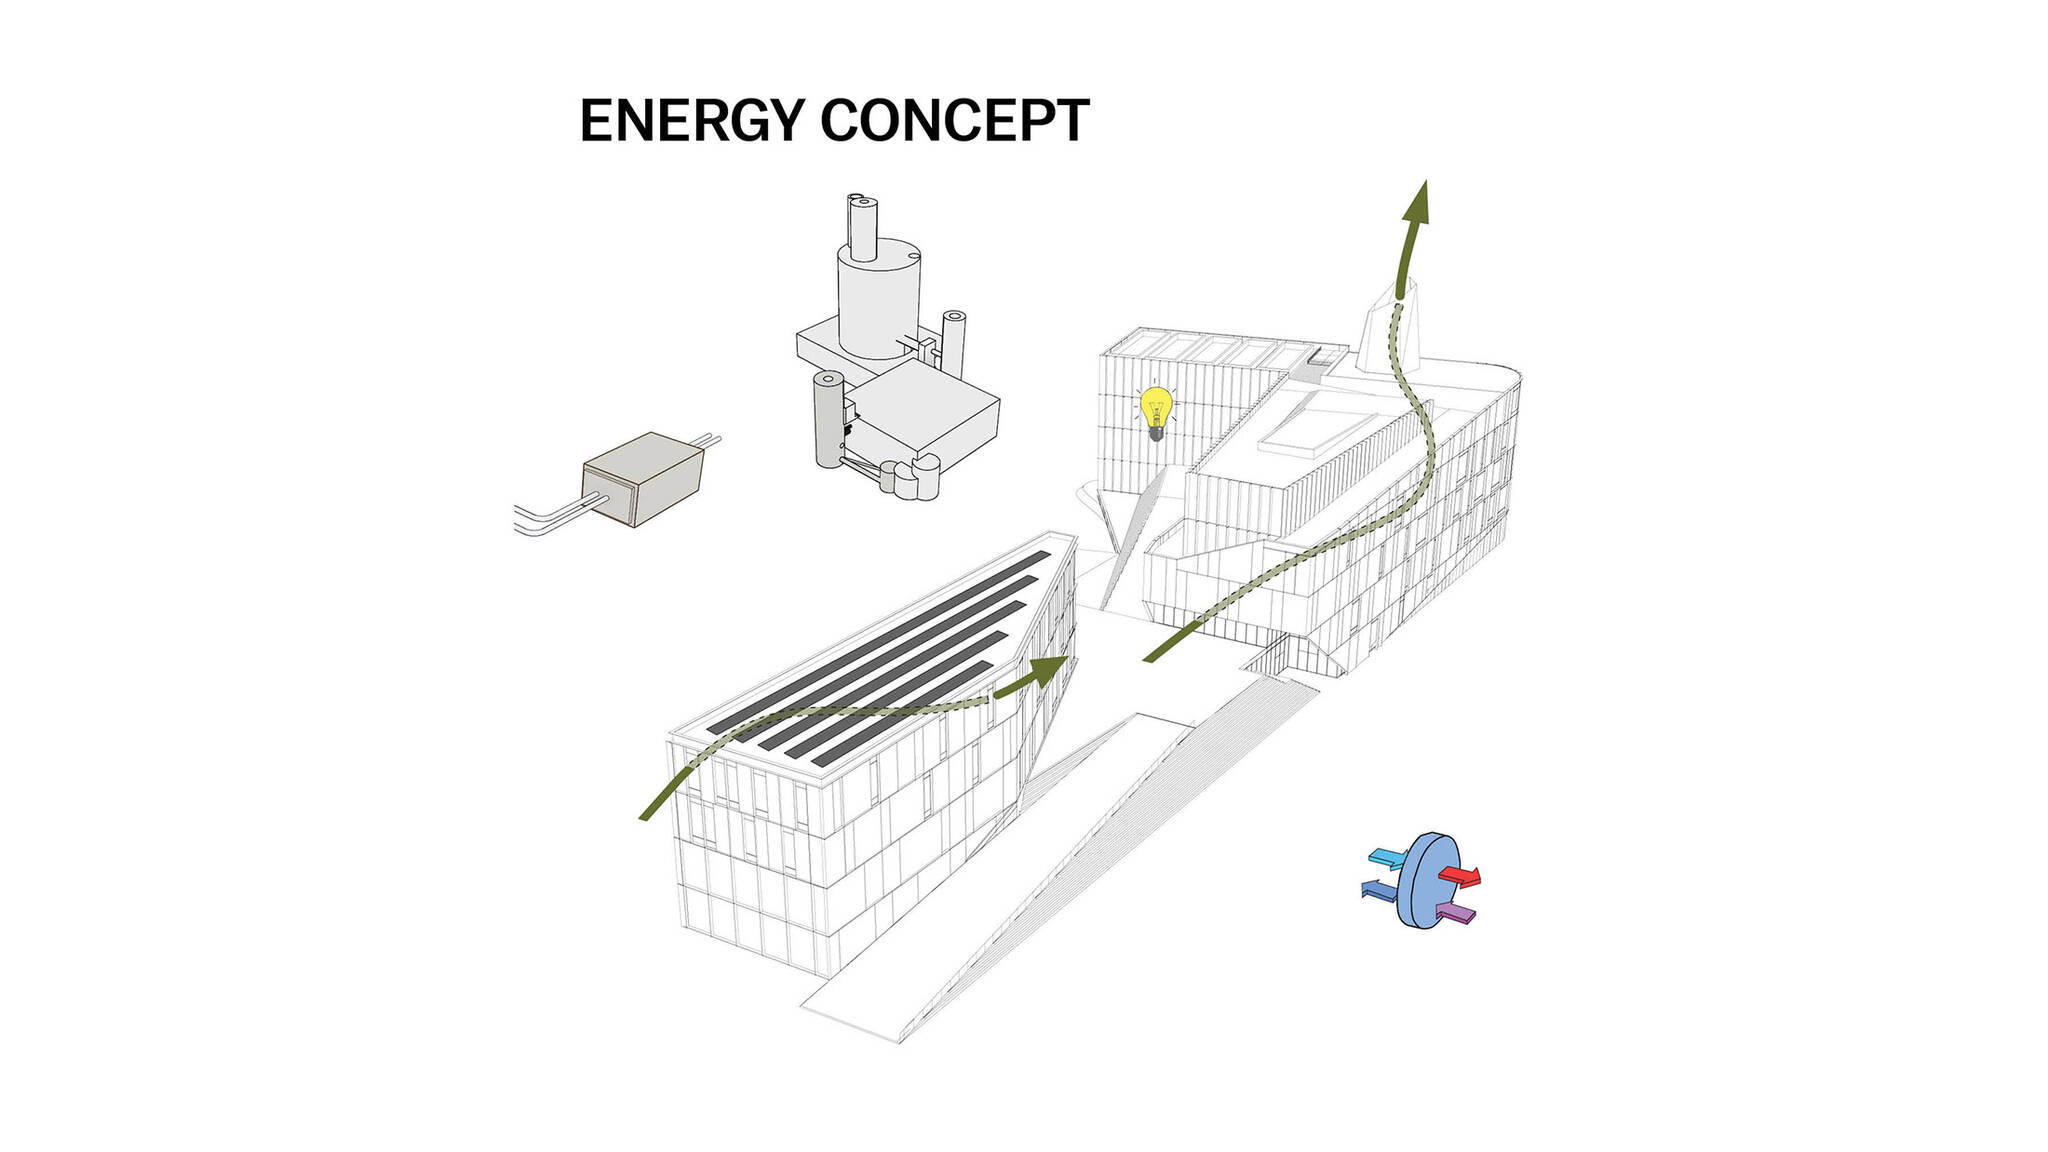 Energy concept of the Museum of Etnography project located in Budapest, Hungary designed by the architecture studio Danny Forster & Architecture